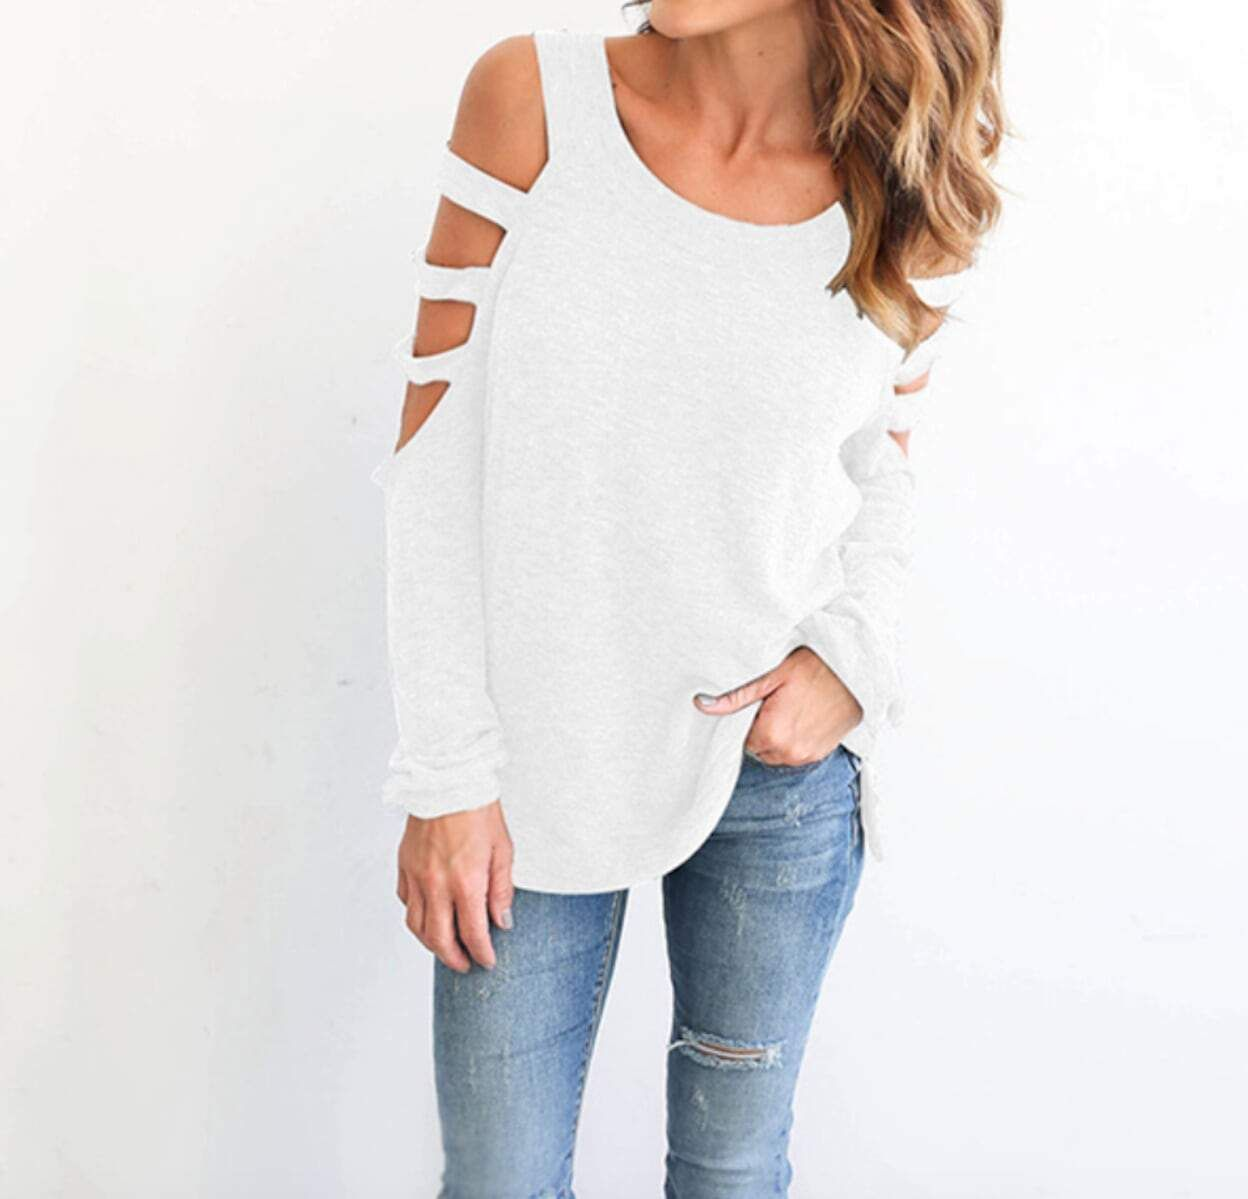 497750610cd Womens Cut Out Shoulder Top Fabric: Nylon Fit: Slim Fit Color Available:  Black, Blue, White, Dark Gray, Light Gray Size: XS, S, M XS Shoulder : 15  inch ...